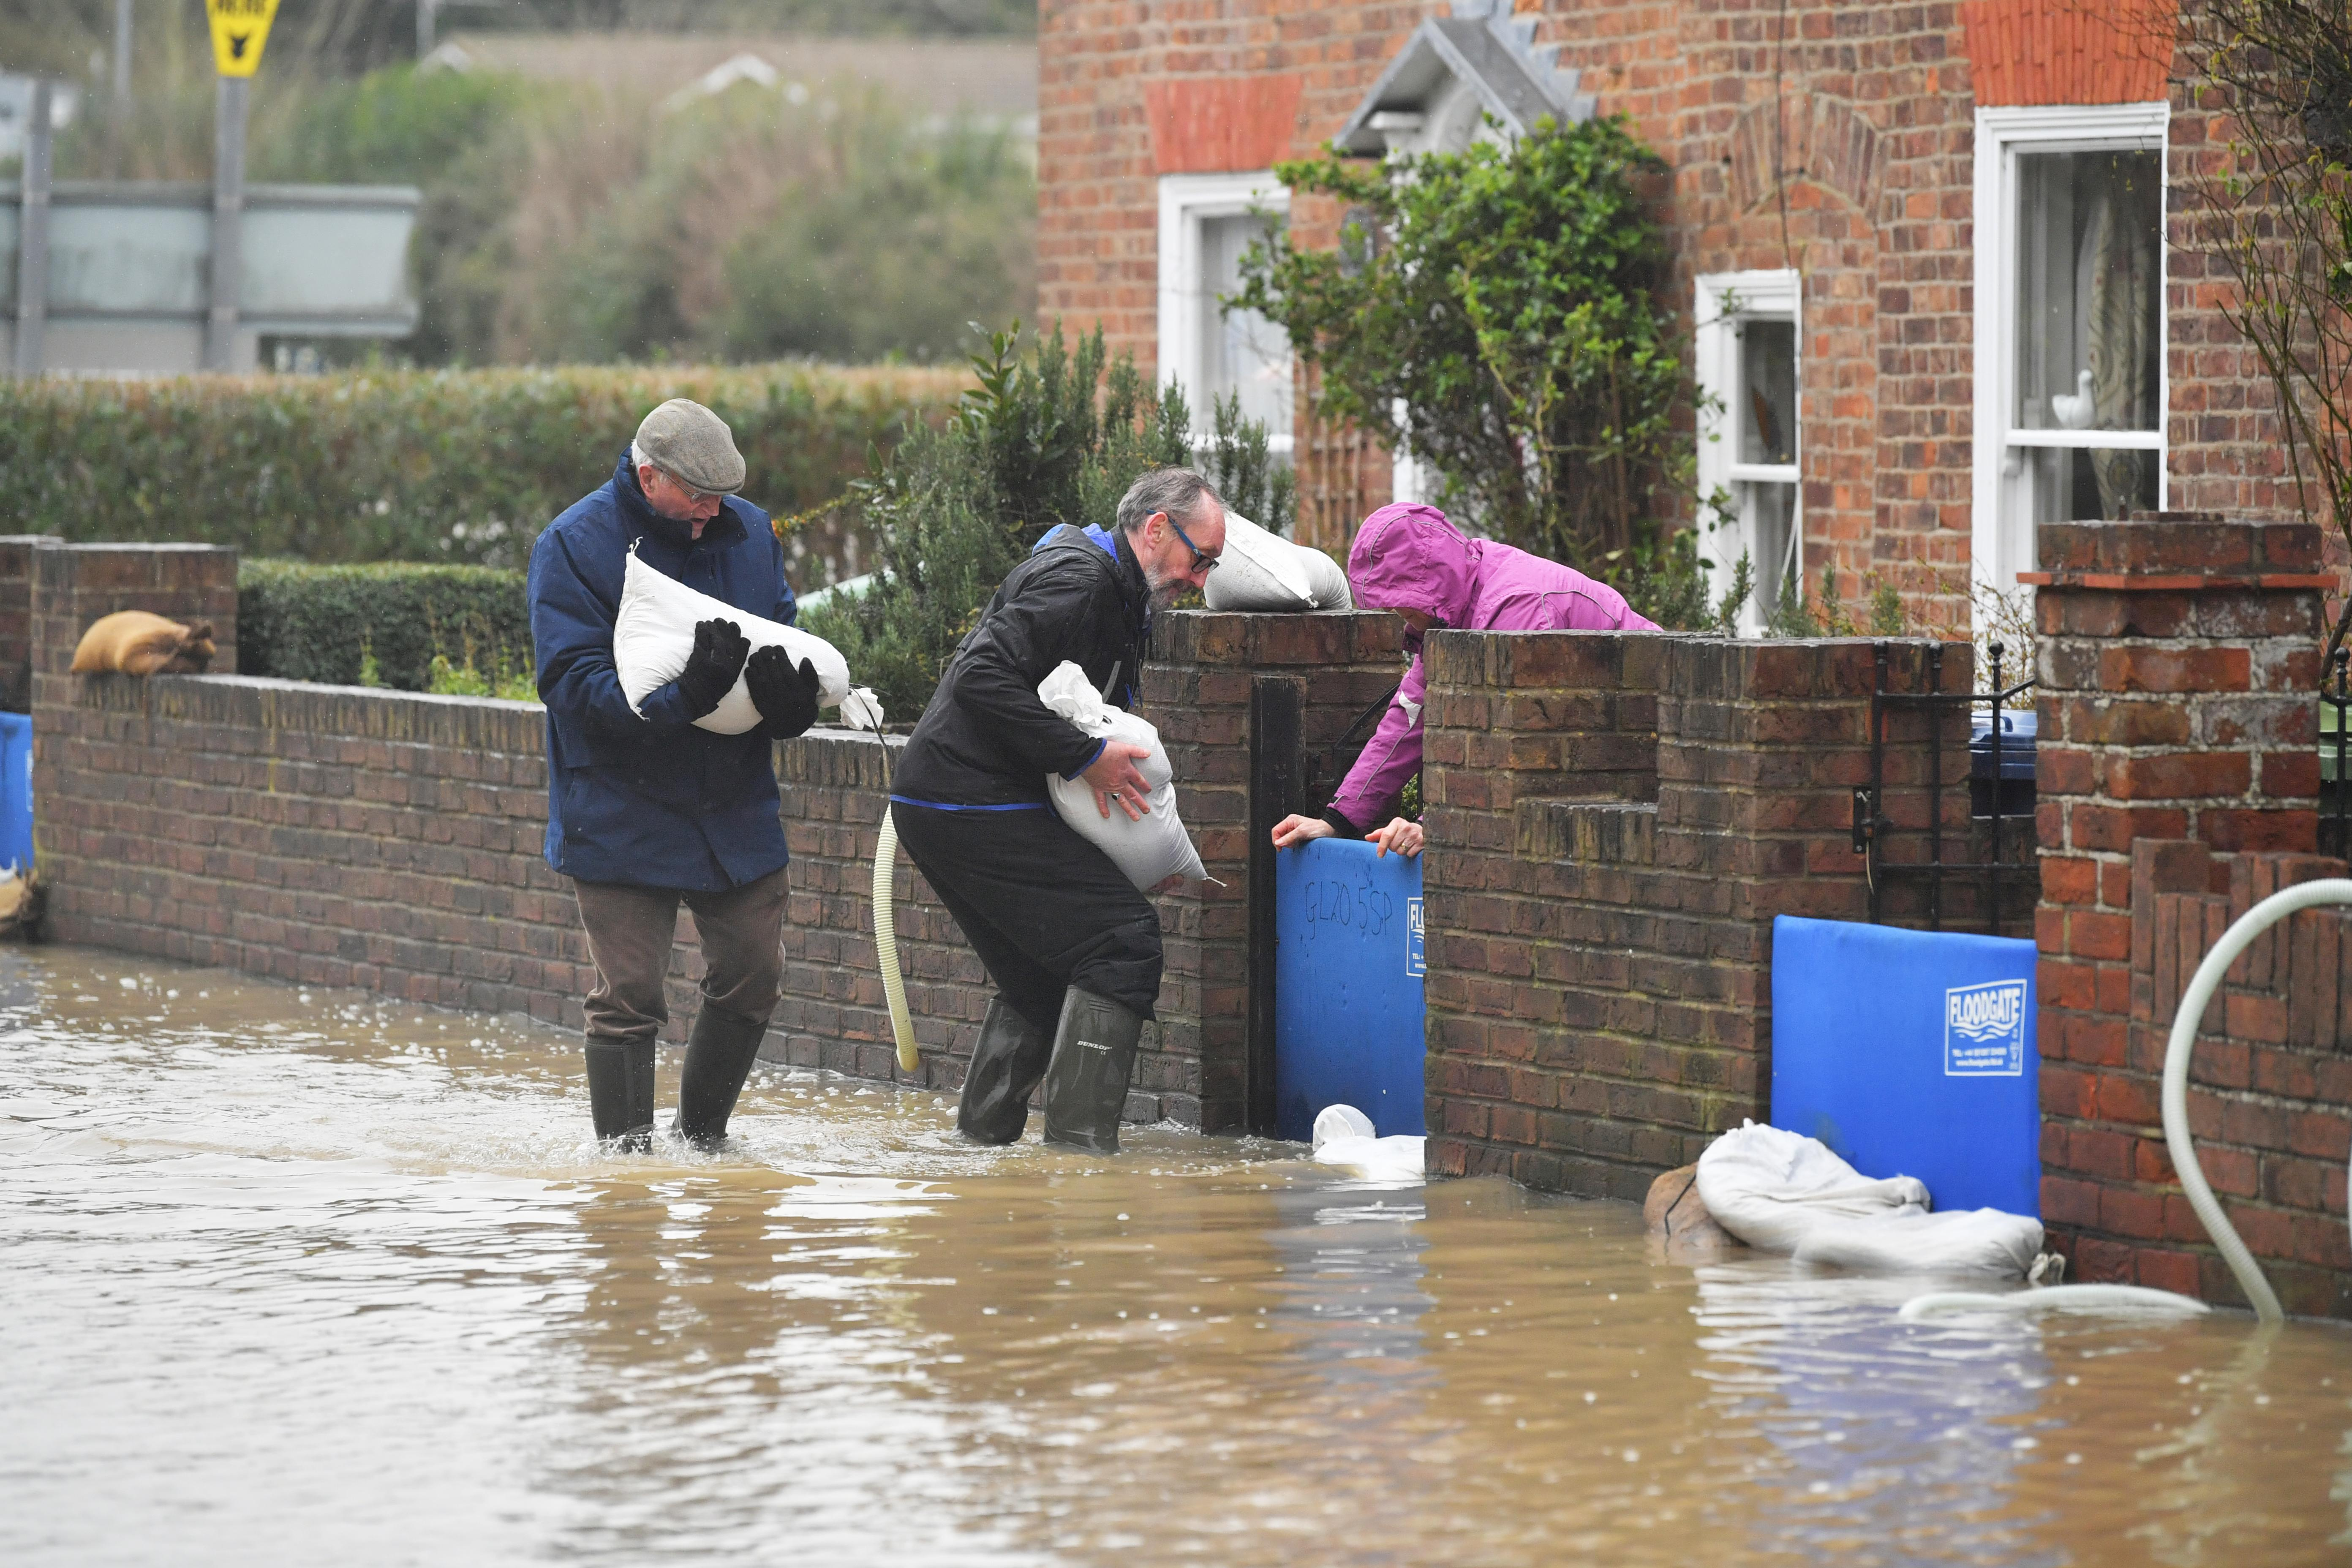 Residents picking up sandbags in Gloucester Road in Tewkesbury, Gloucestershire, where pumps and flood barriers have been put in to help to keep the water from flooding homes following the aftermath of Storm Dennis.